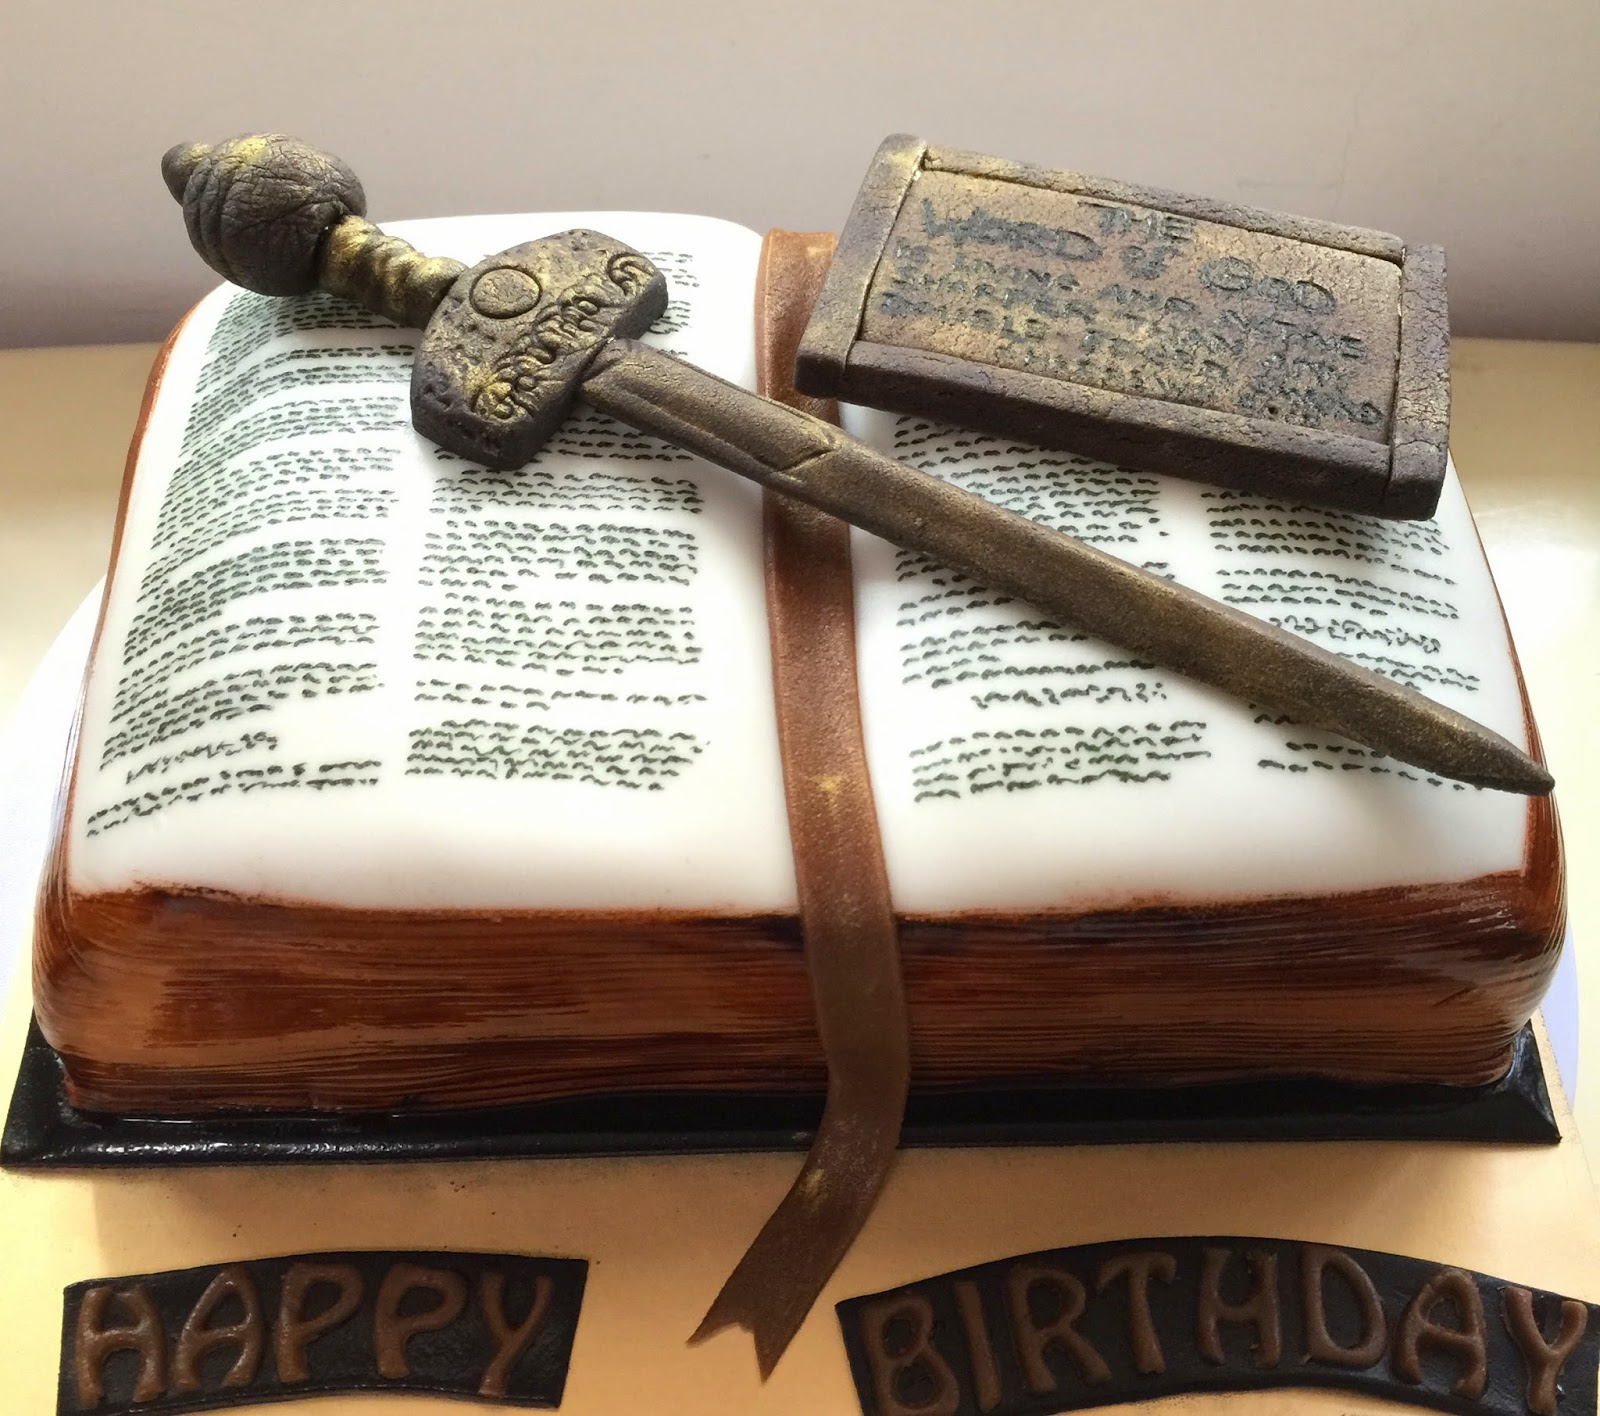 Sword In The Bible Quote: Sword And Bible Cake